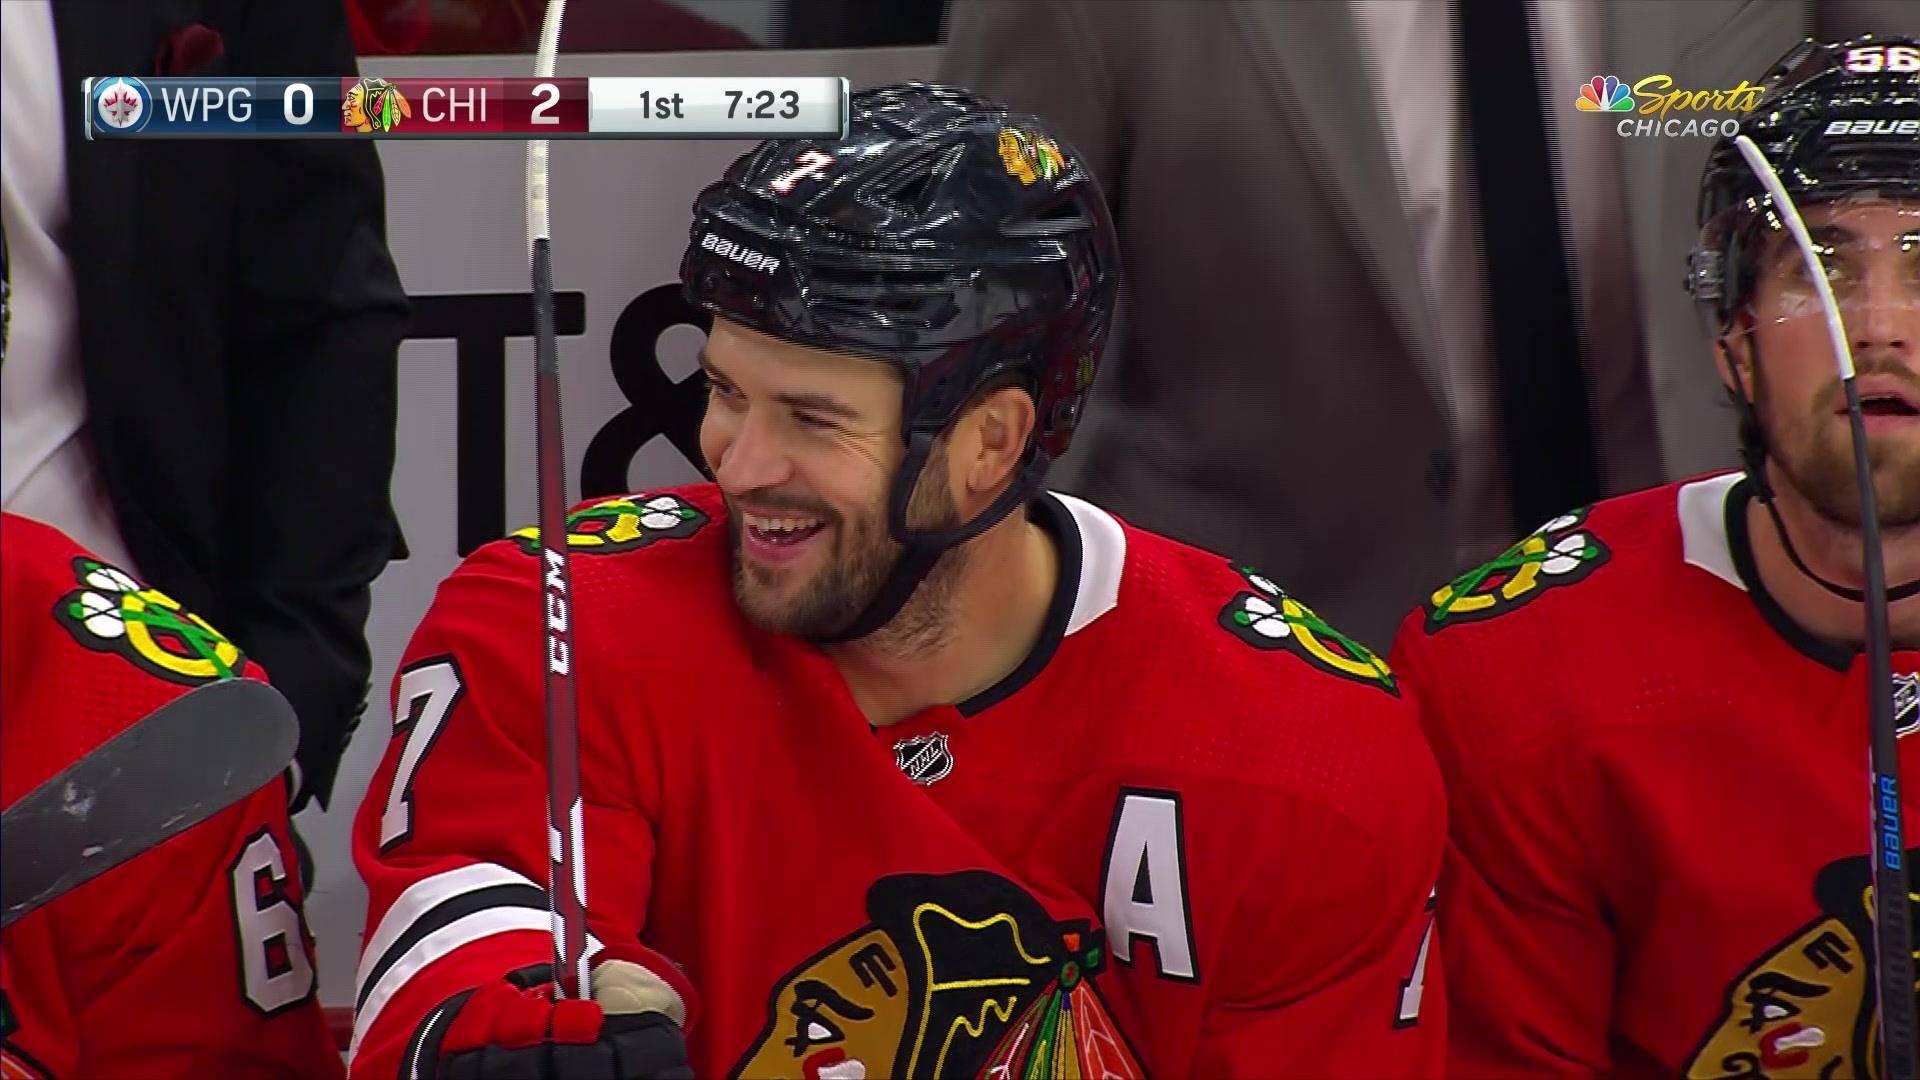 Brent Seabrook's first goal of the season to extend the Blackhawks